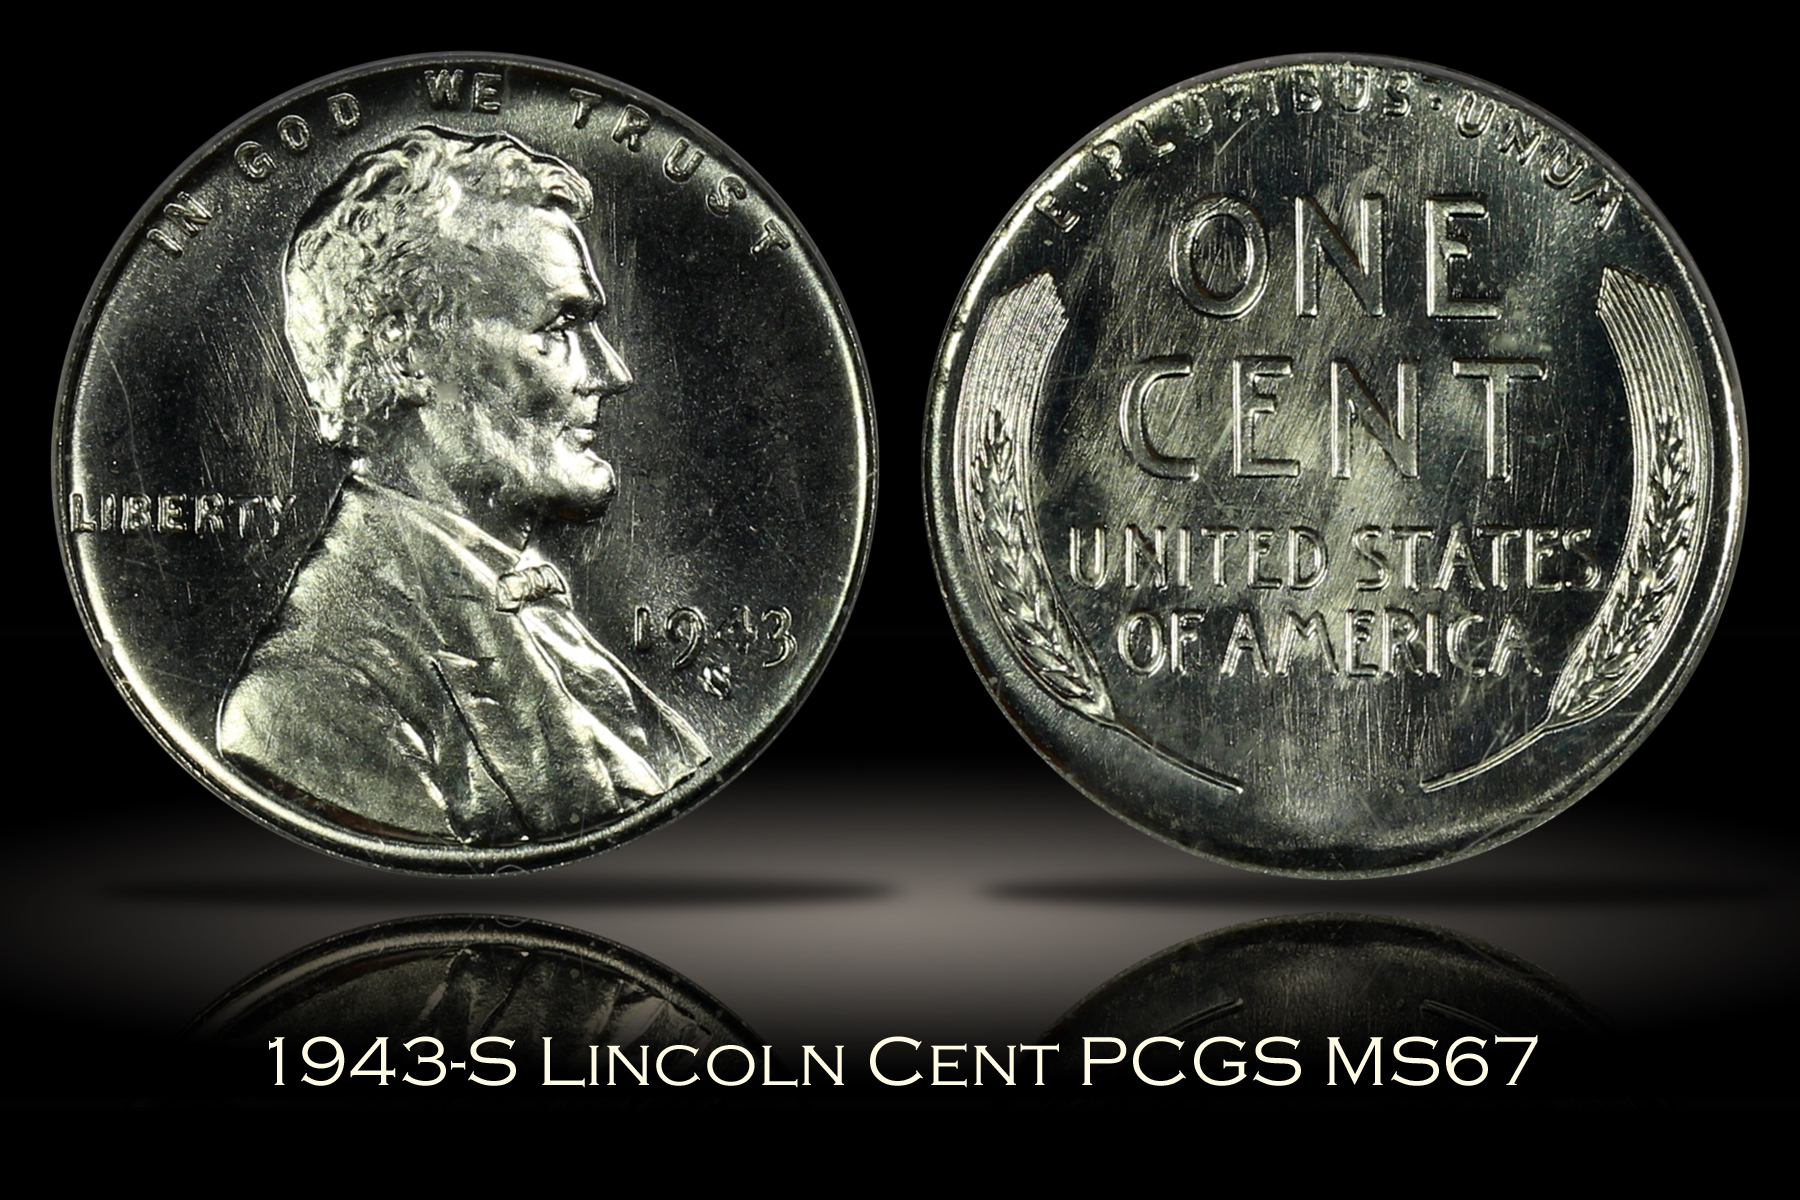 1943-S Lincoln Cent PCGS MS67